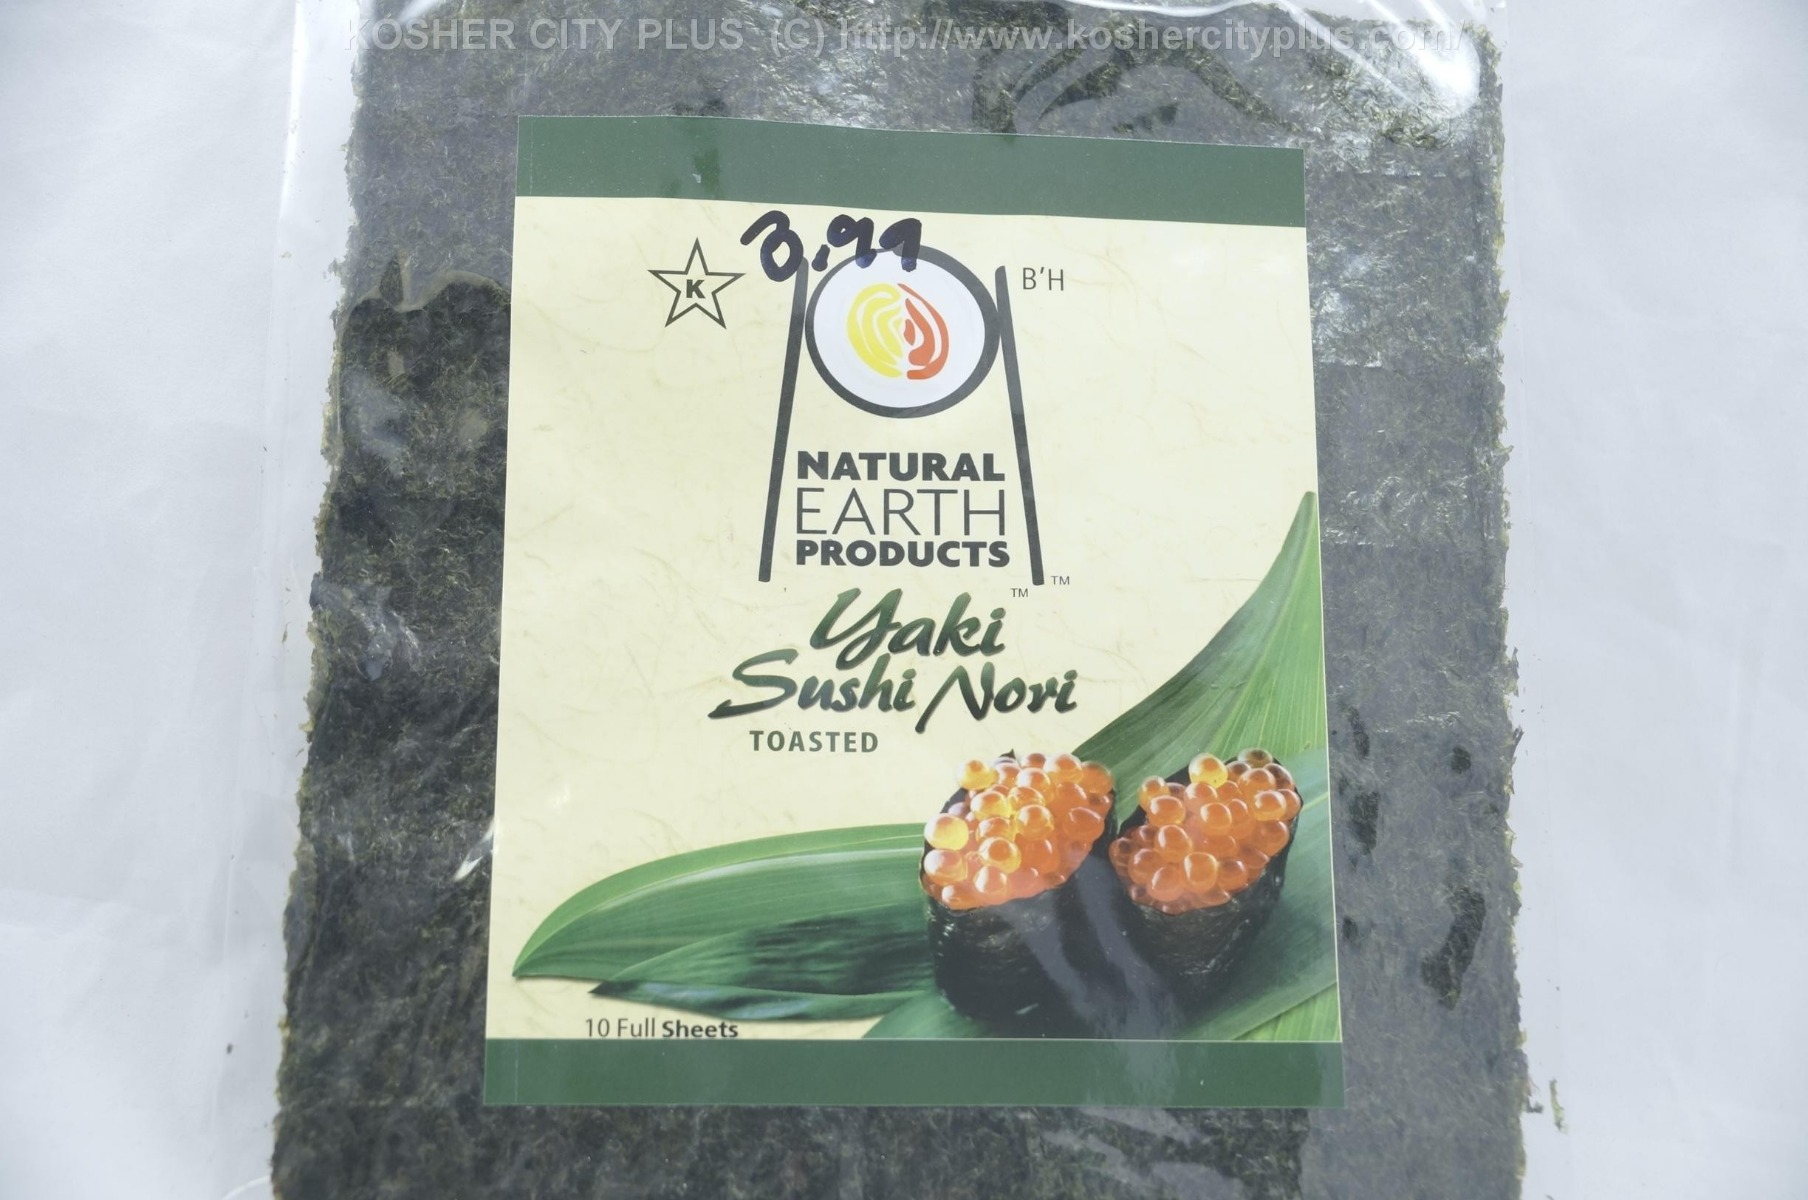 NATURAL EARTH: Sushi Nori Ten Full Sheets, 0.98 oz